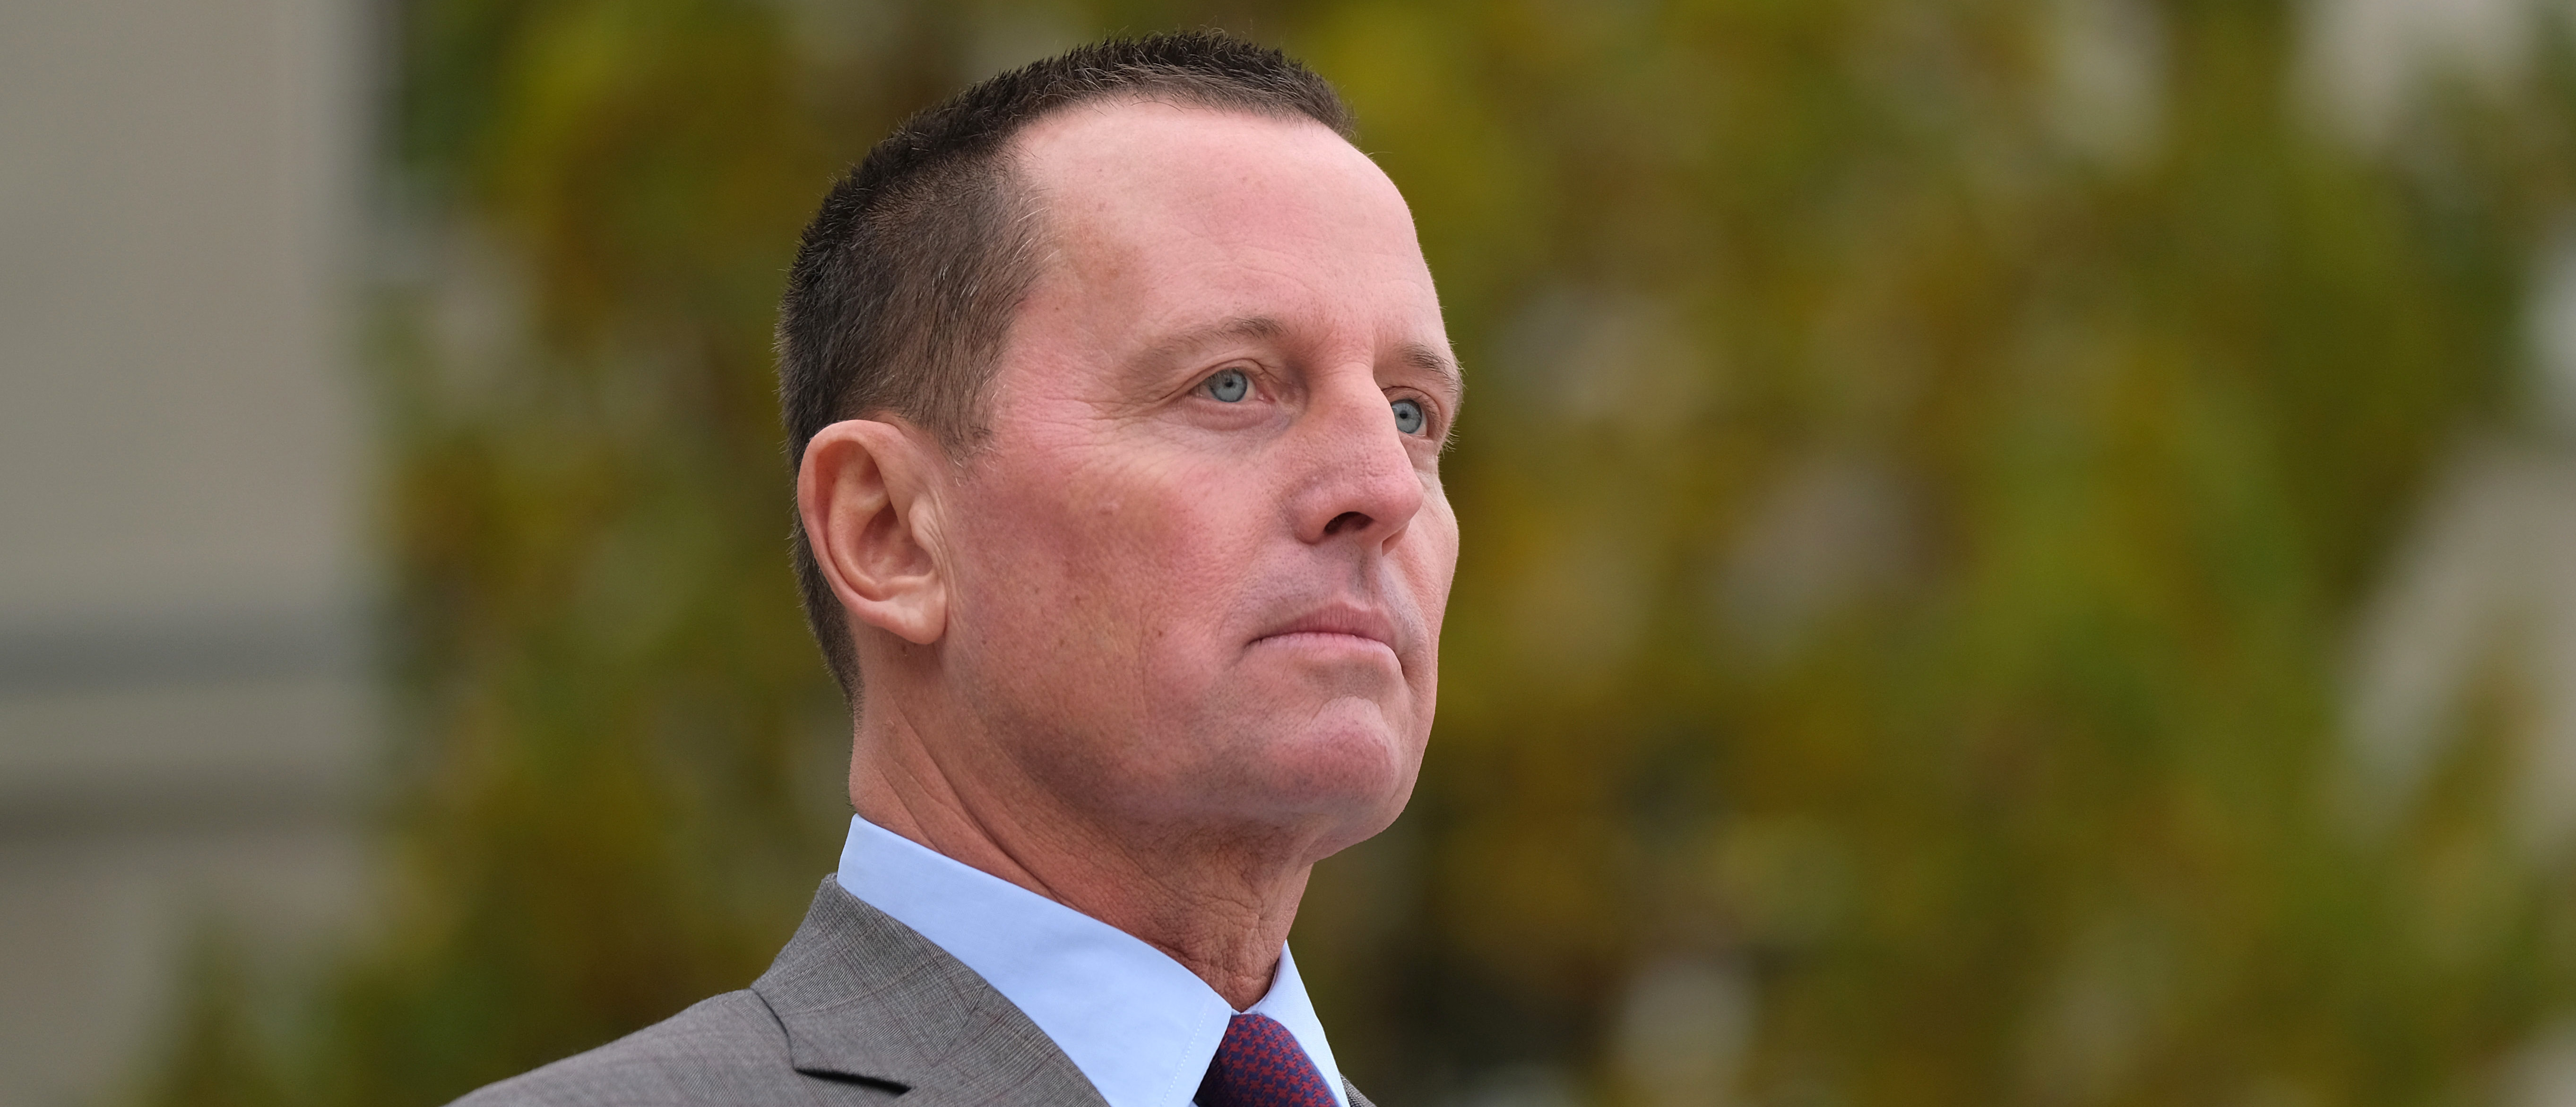 'Those Are Coming': Grenell Says He Is Working To Declassify More Flynn Documents